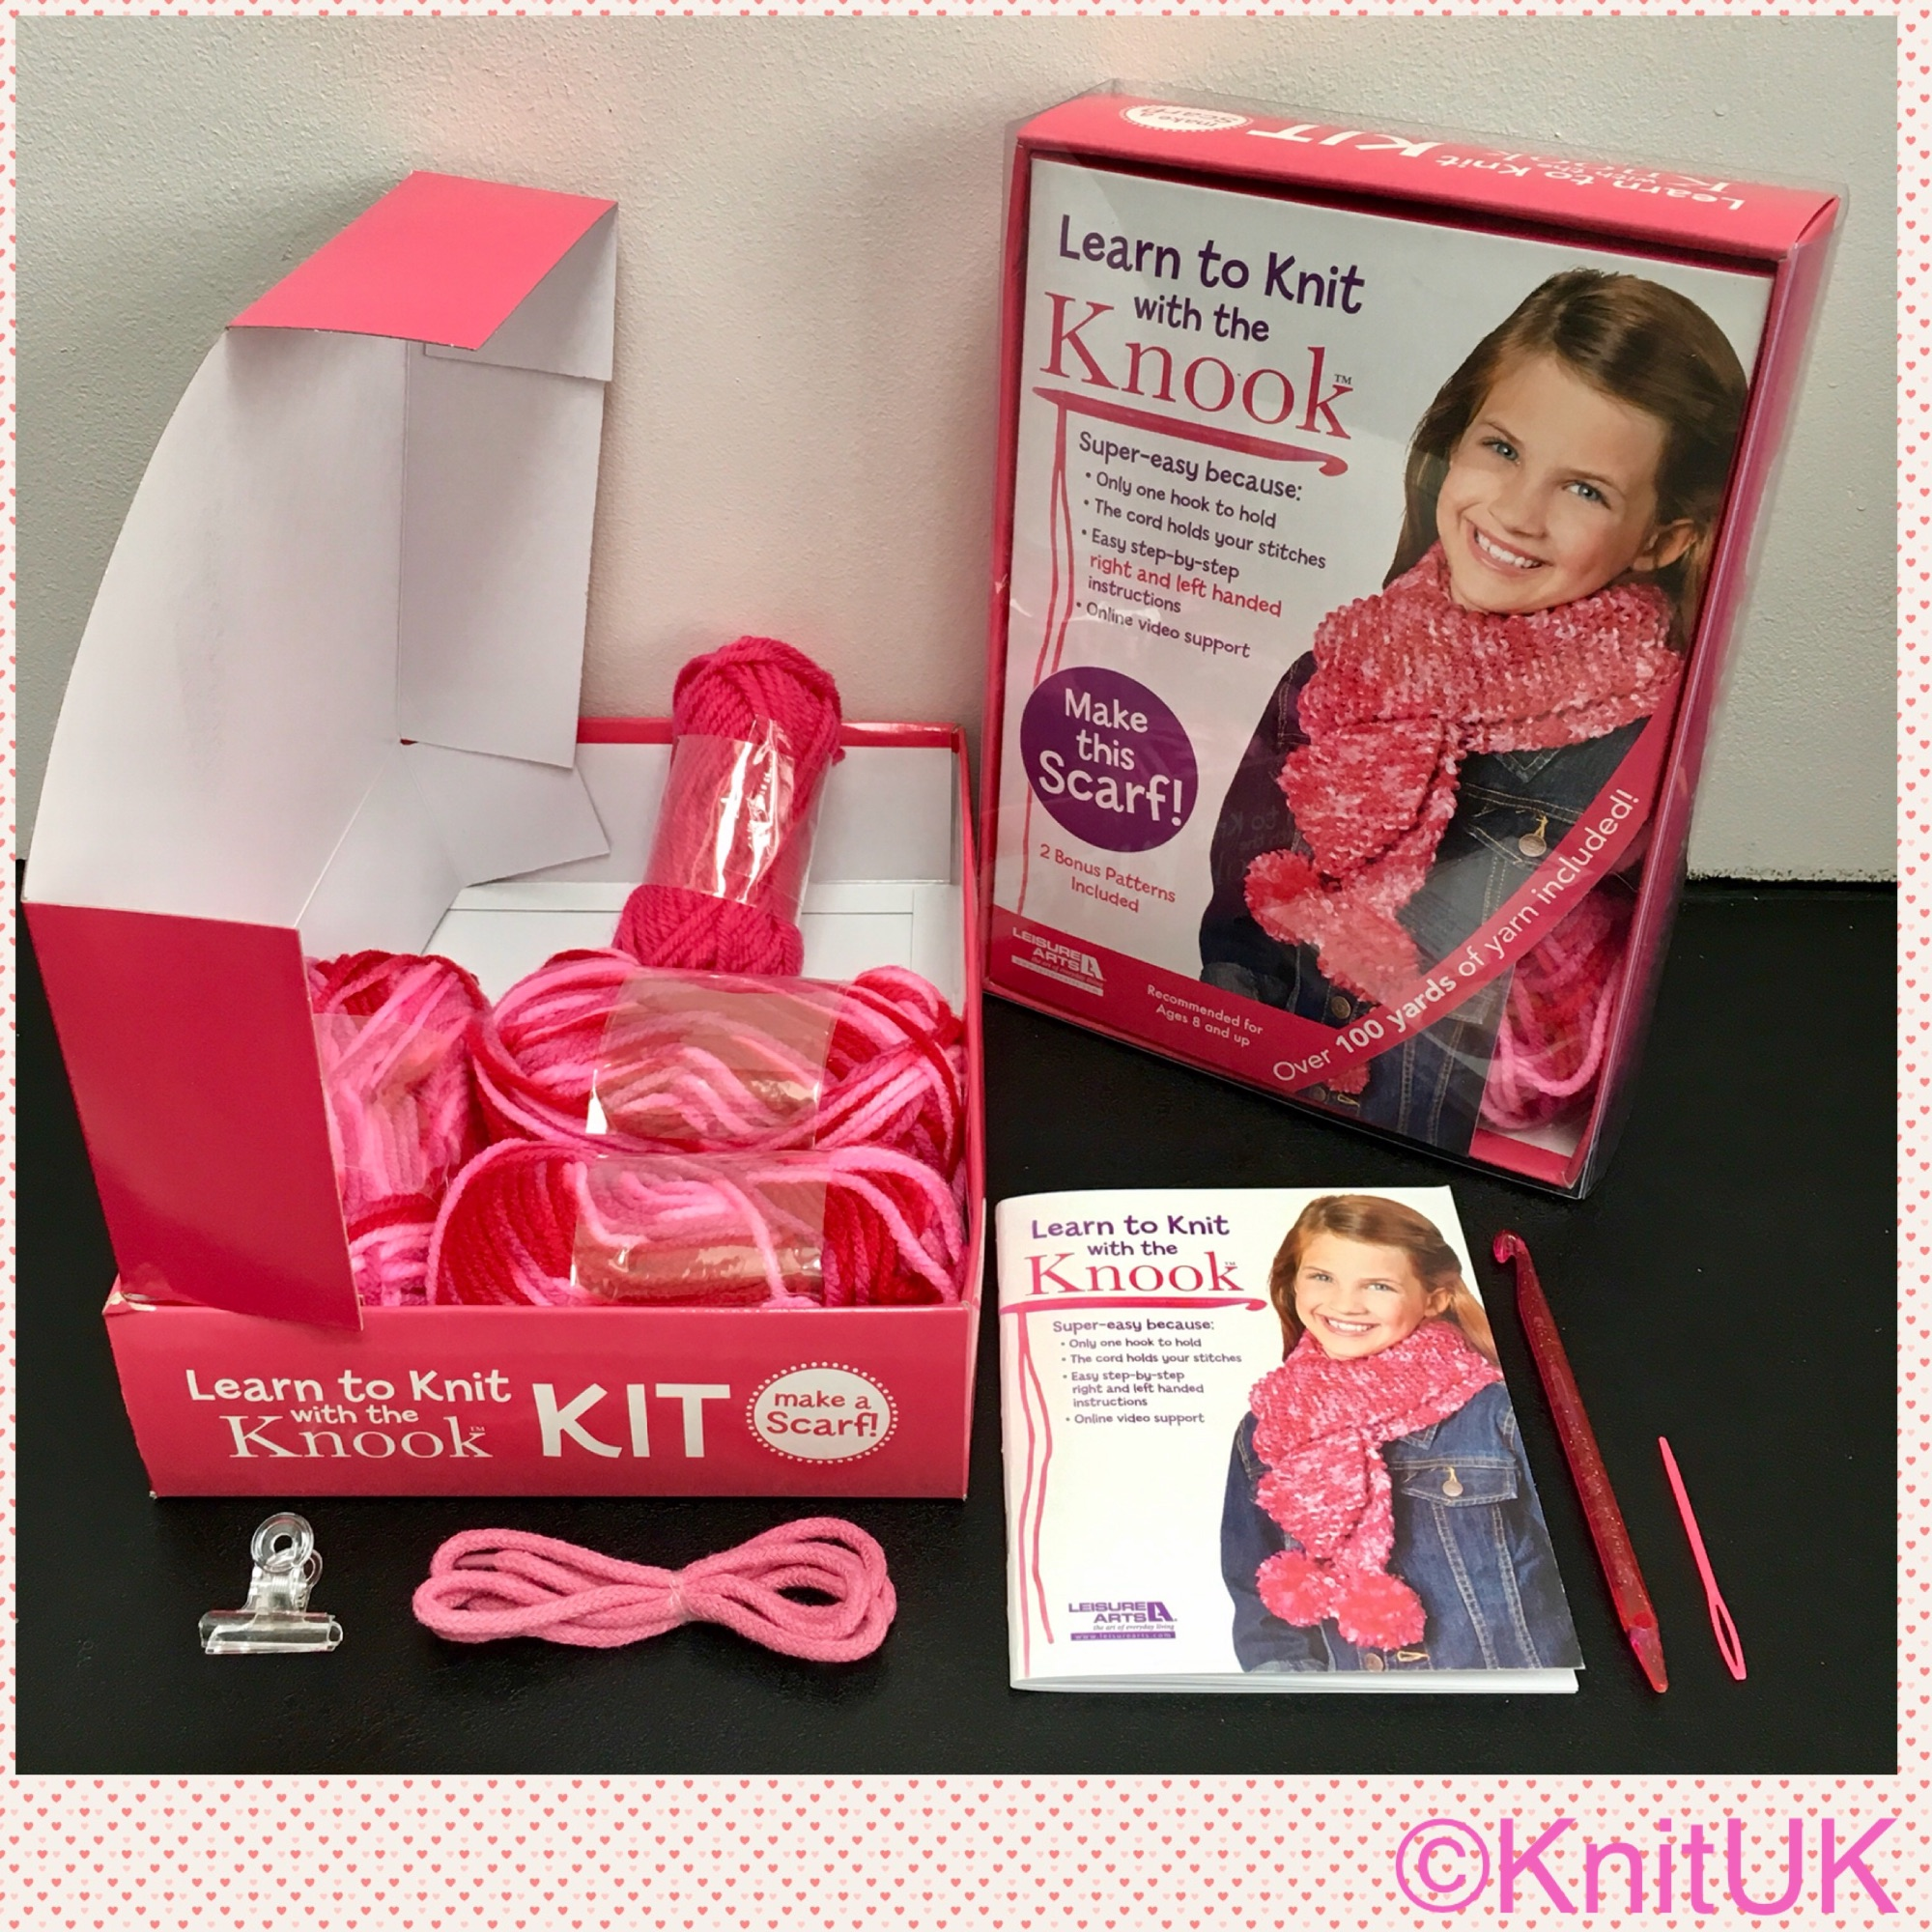 leisure arts learn to onit with the knook kit content